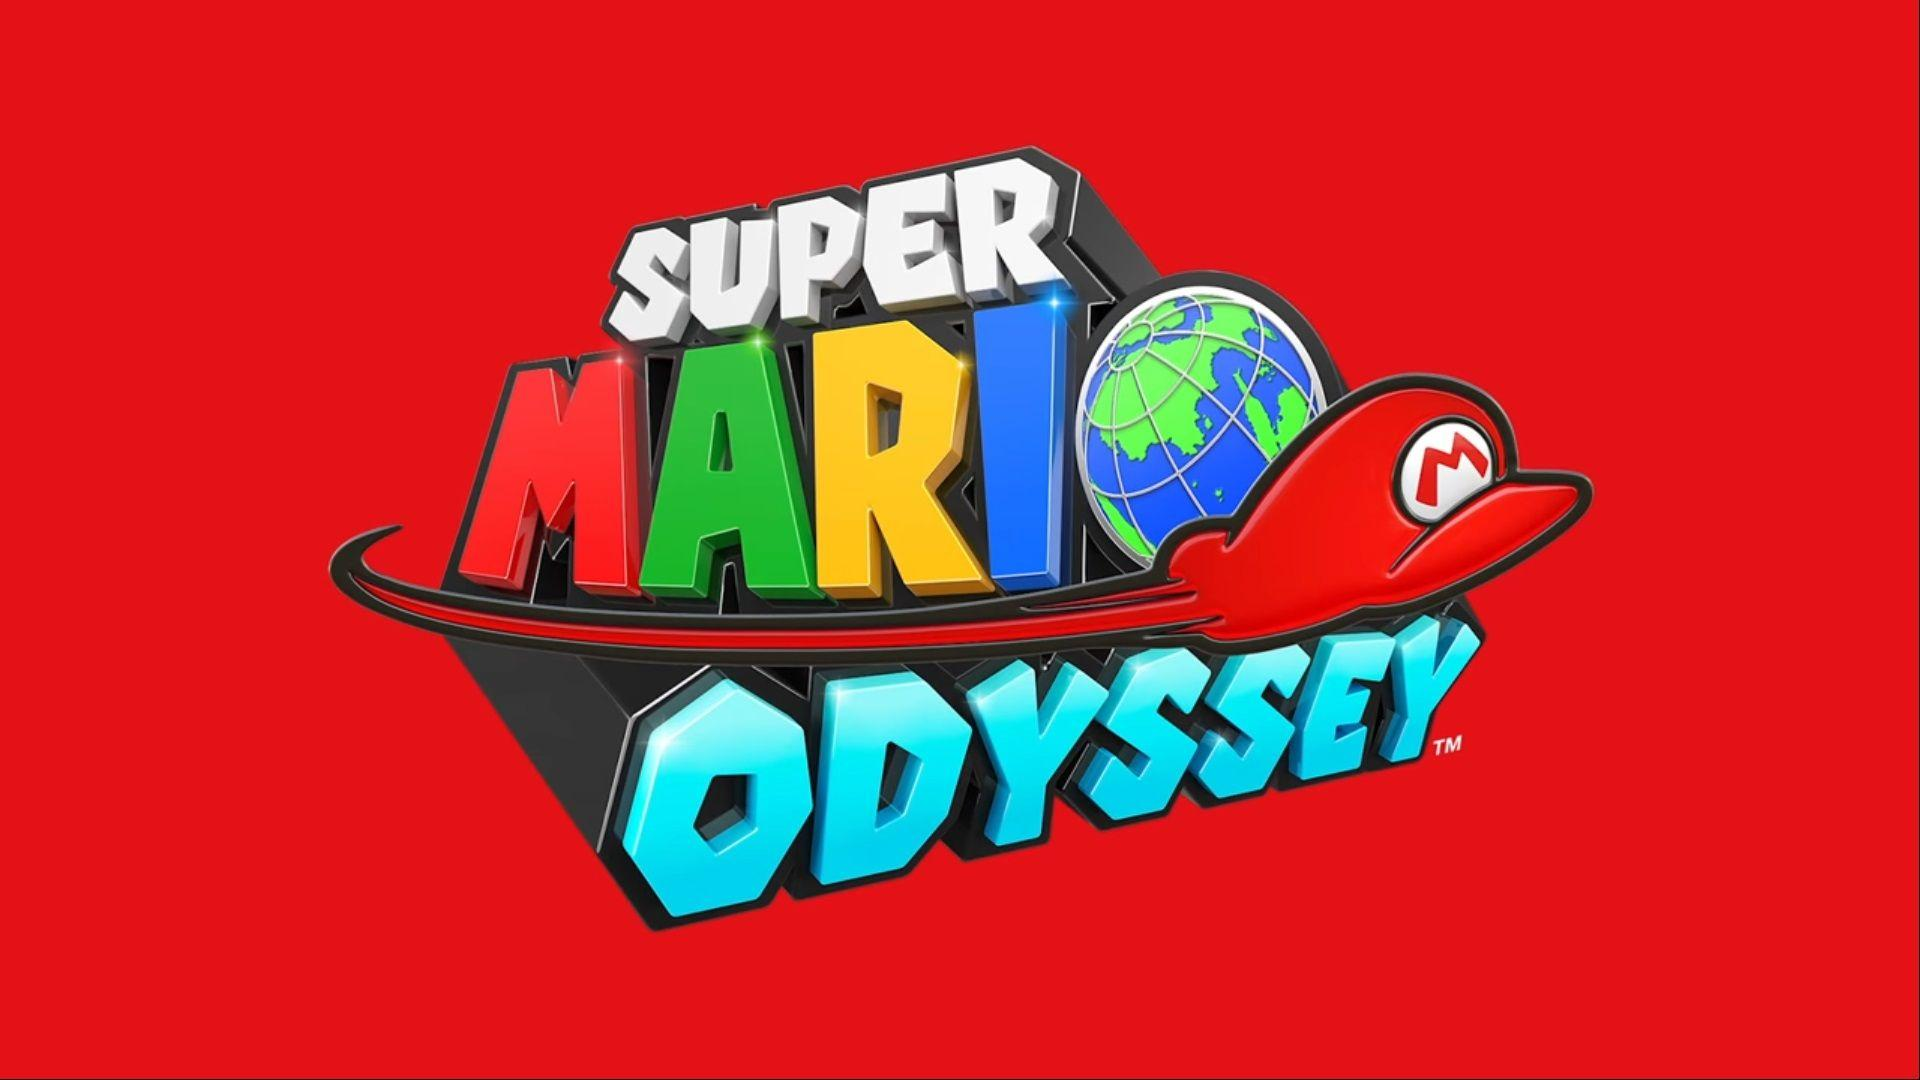 VIDEO: Super Mario Odyssey announced with gameplay trailer for